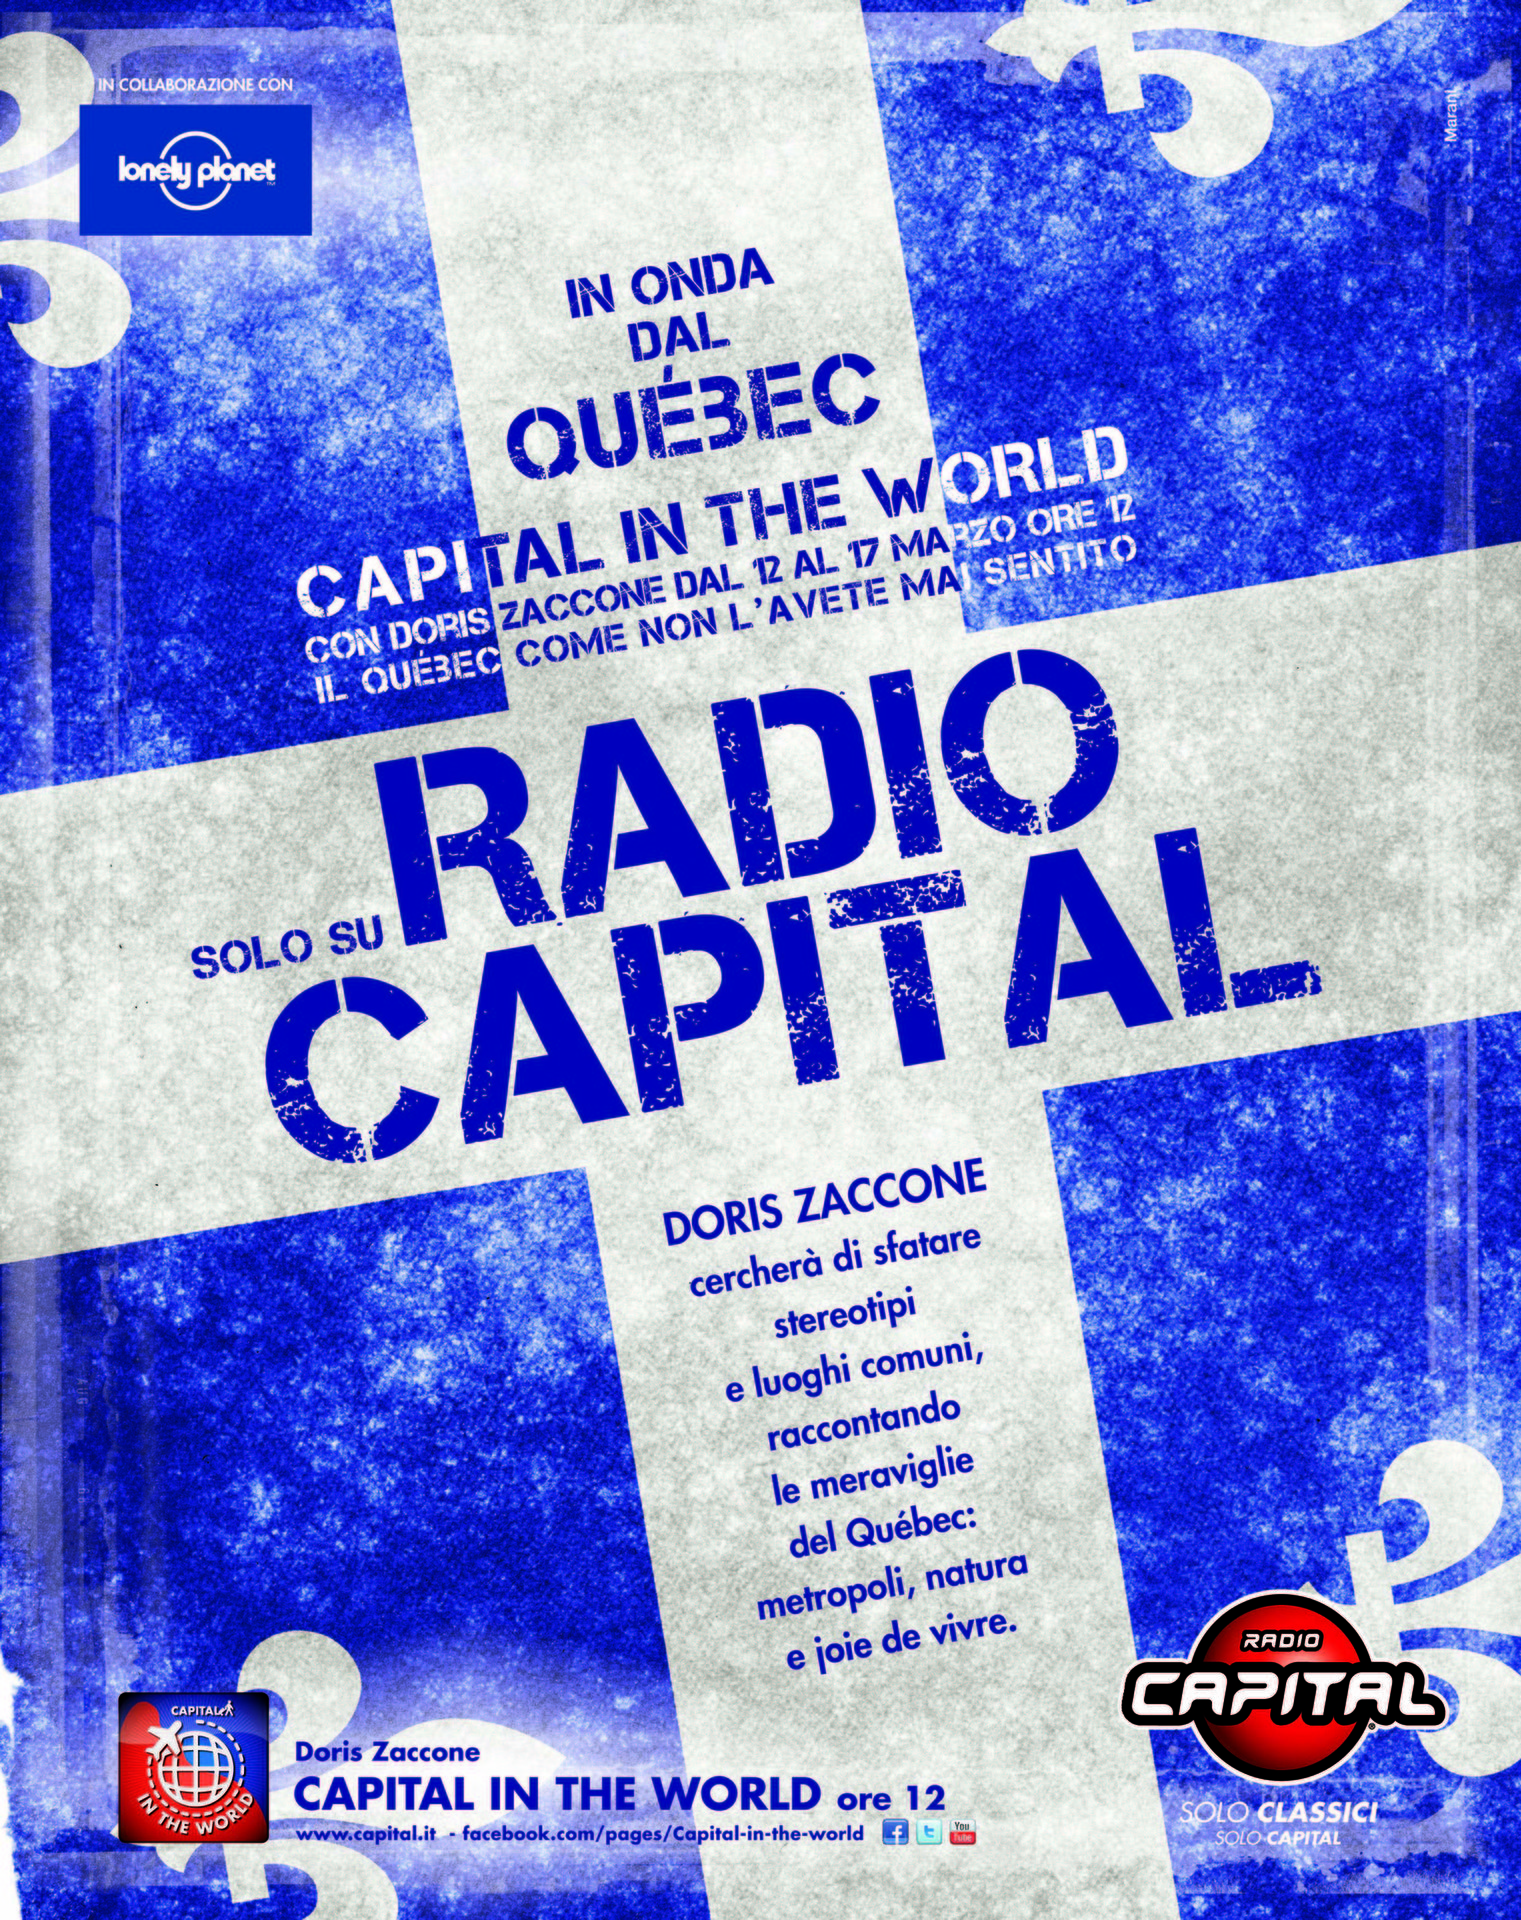 CAPITAL+IN+THE+WORLD+DAL+QUEBEC